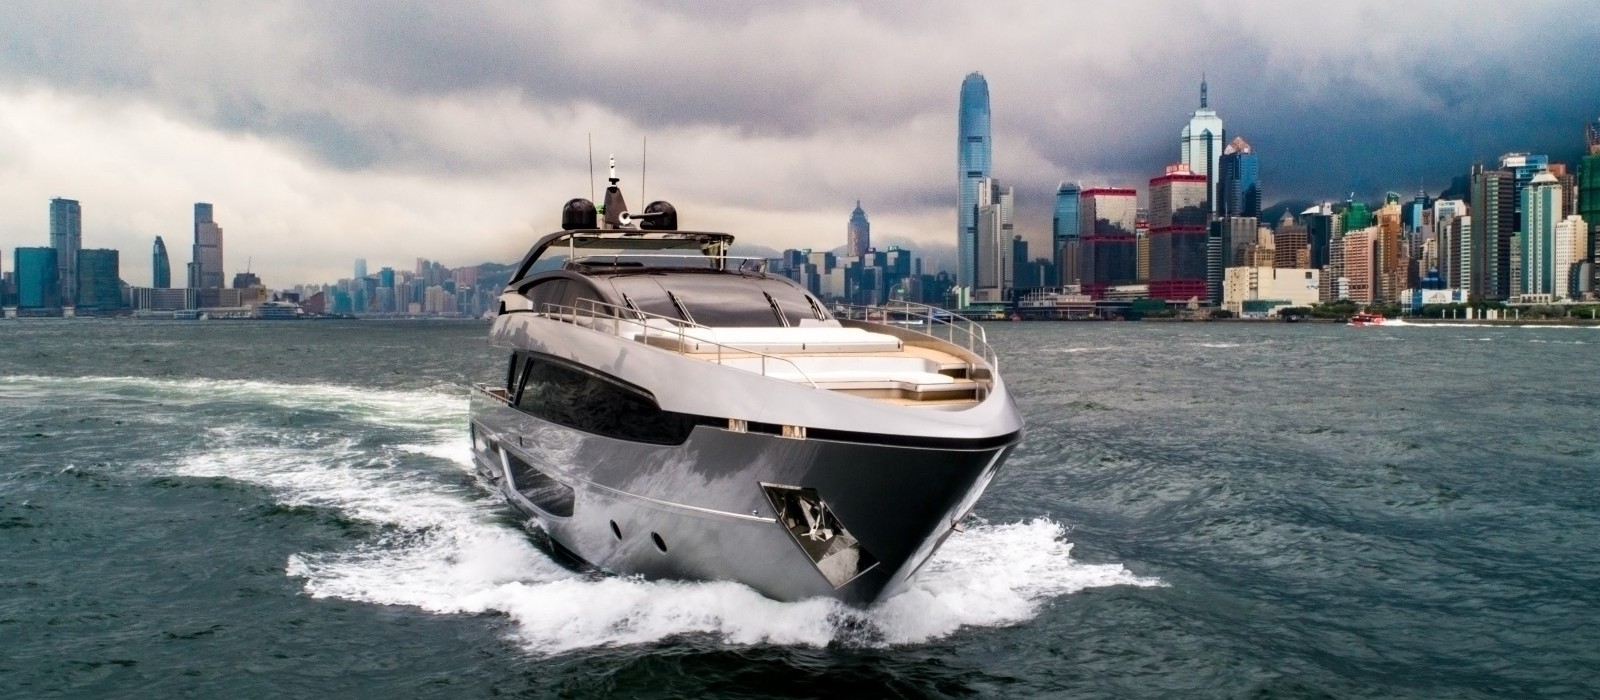 Luxury Boat Hire Home Page